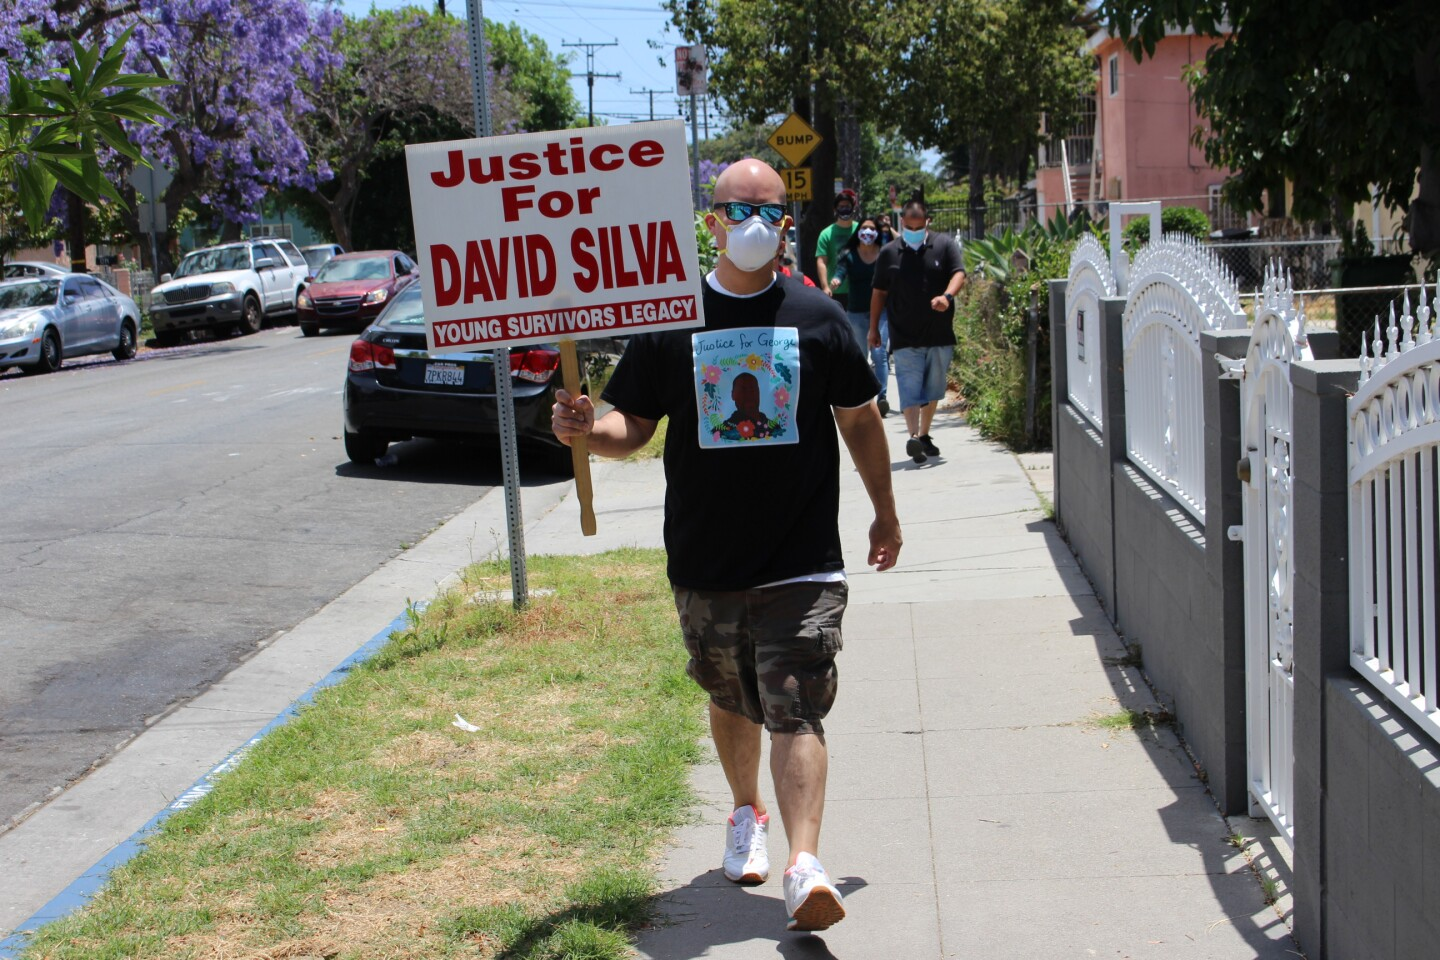 Chris Silva, whose brother died during struggle with Kern County Sheriff deputies, holds sign for his brother at George Floyd protest | Karen Foshay